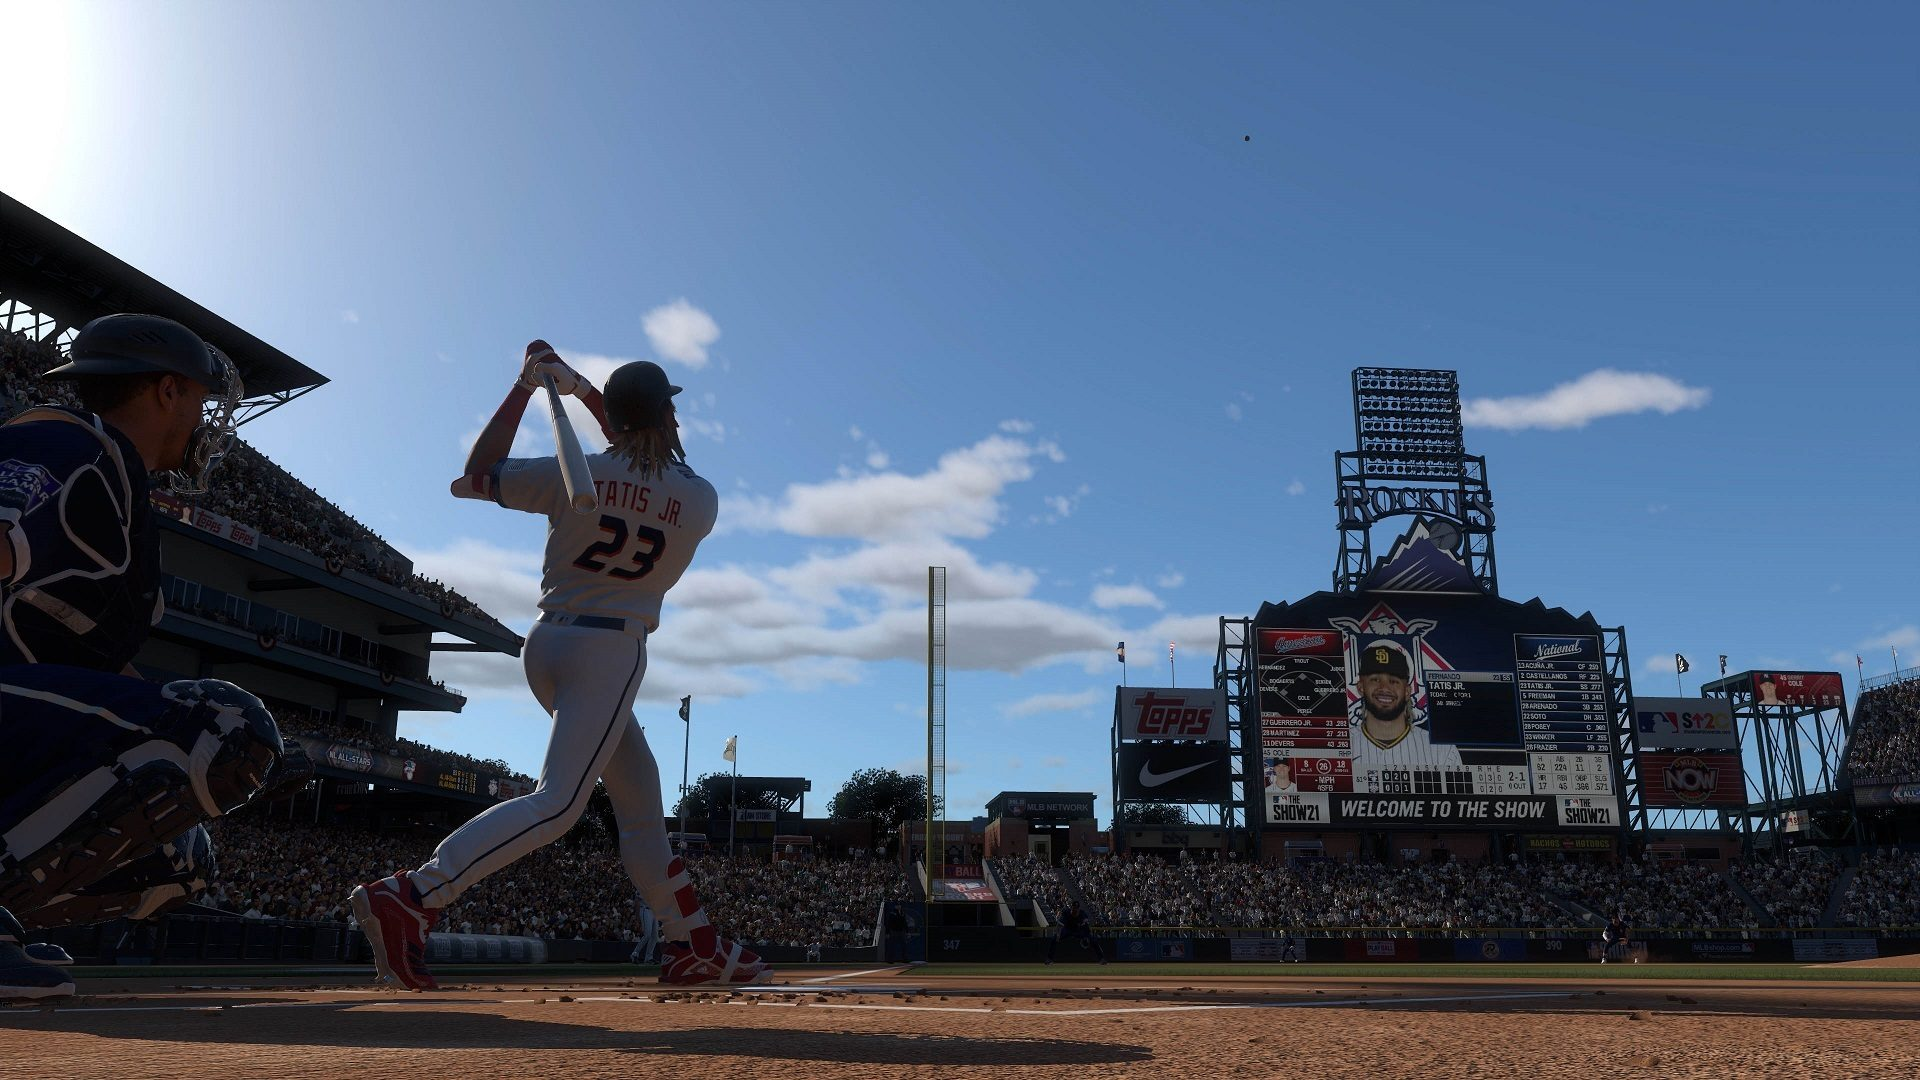 mlb-the-exhibit-21-all-star-content-material-extravaganza